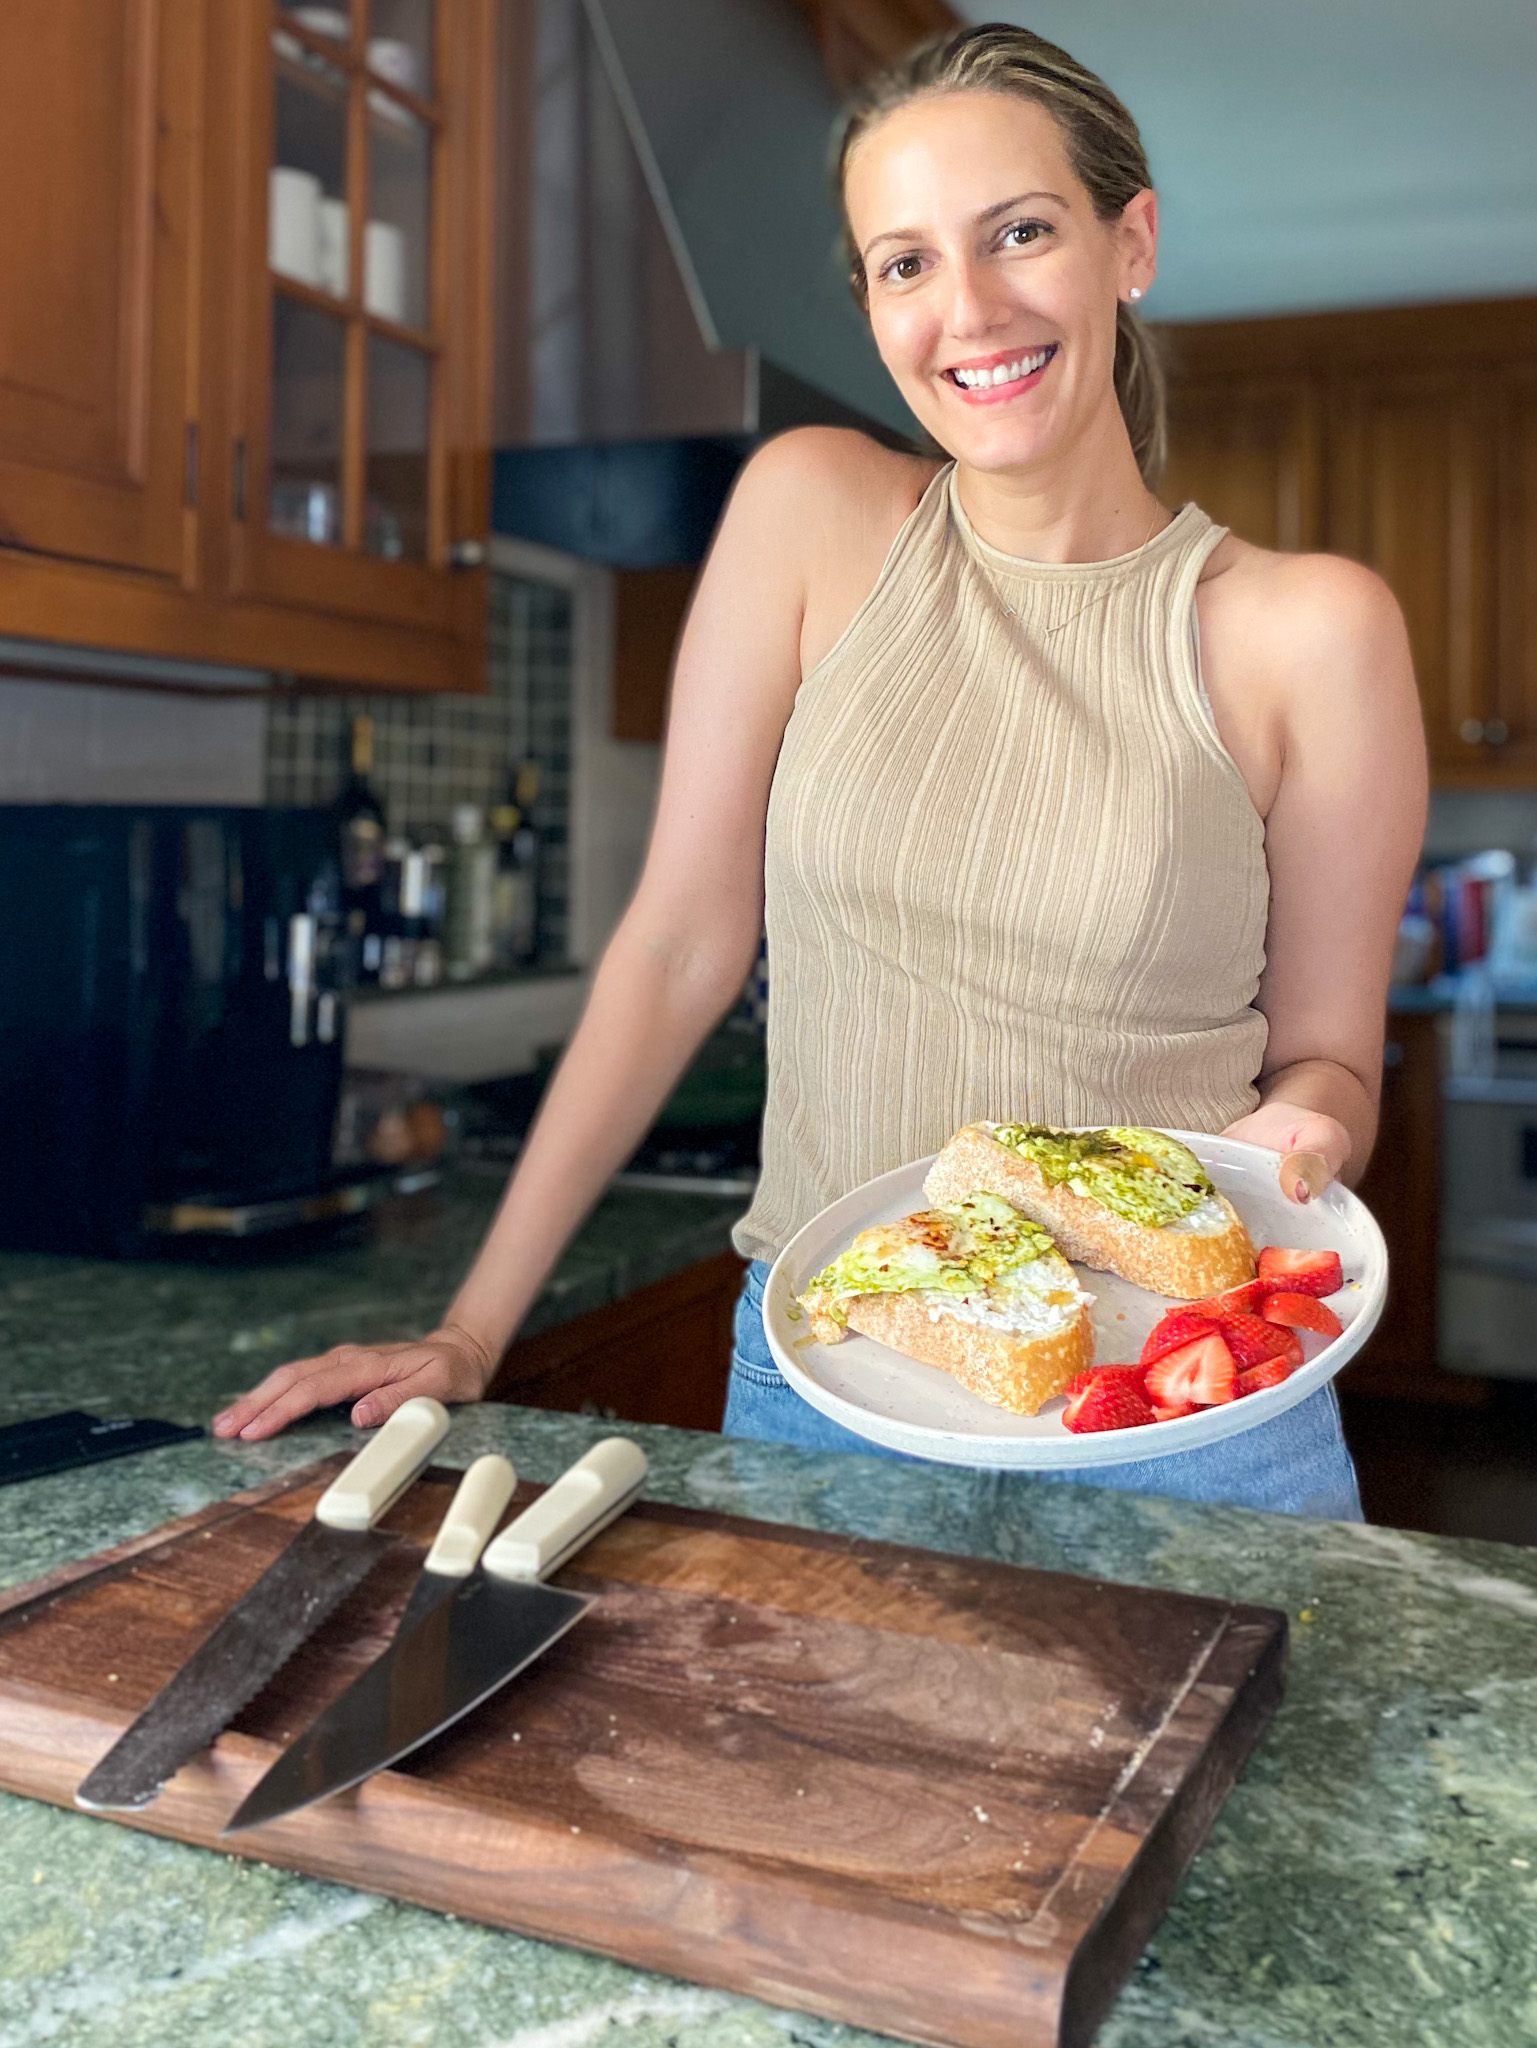 woman smiling and holding a plate out with food